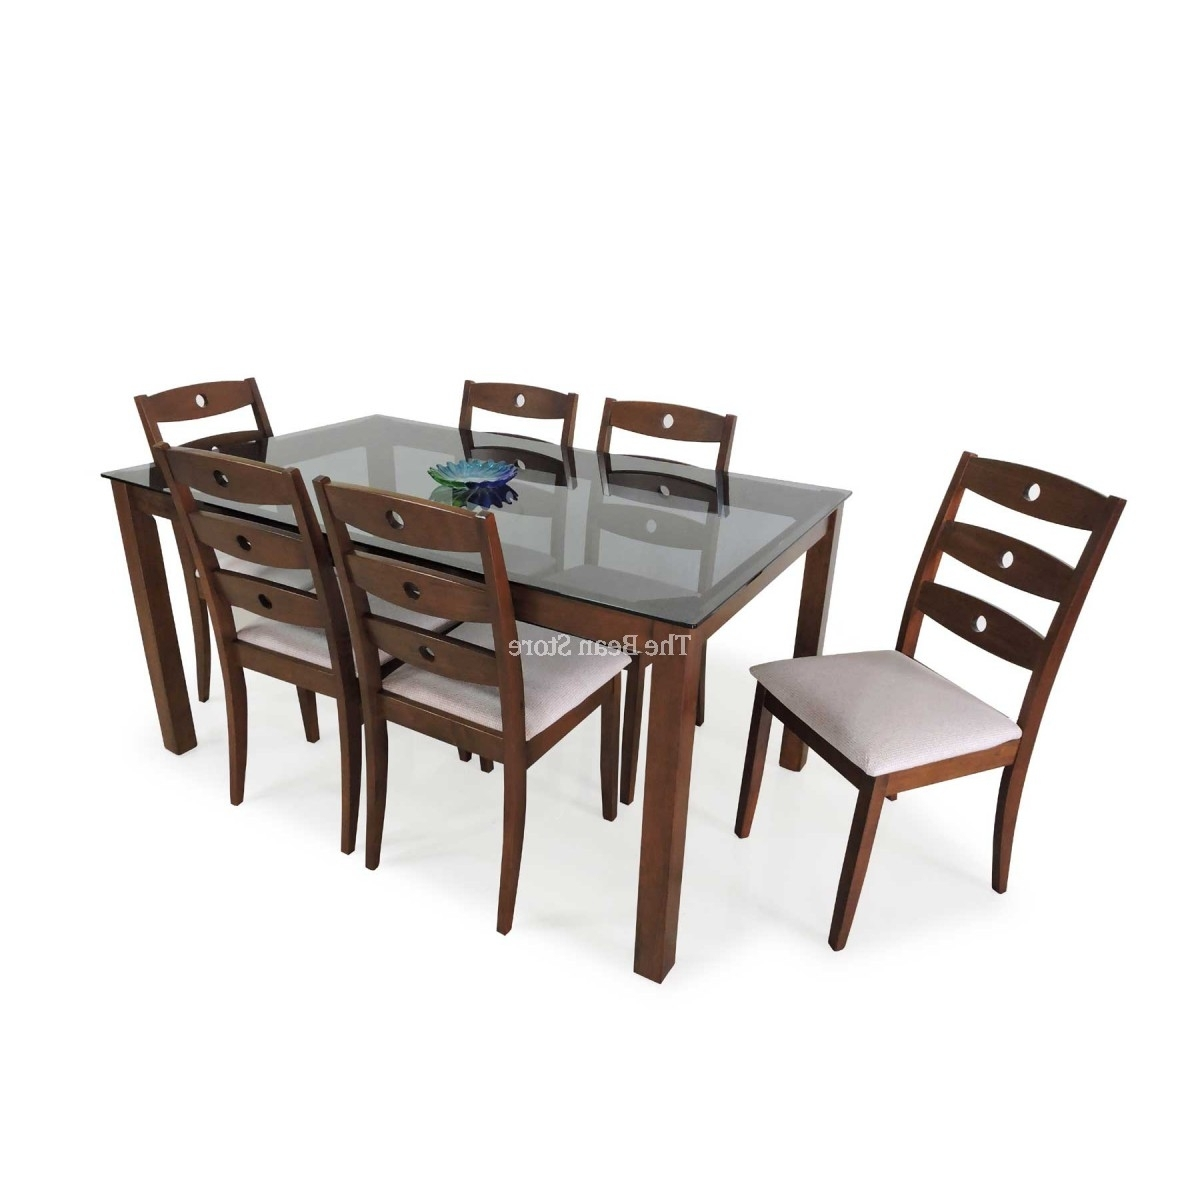 Brico Dining Table – Glass Top (6 Seater) – Bean Bags, Sofa Beds In Trendy 6 Seater Dining Tables (View 16 of 25)